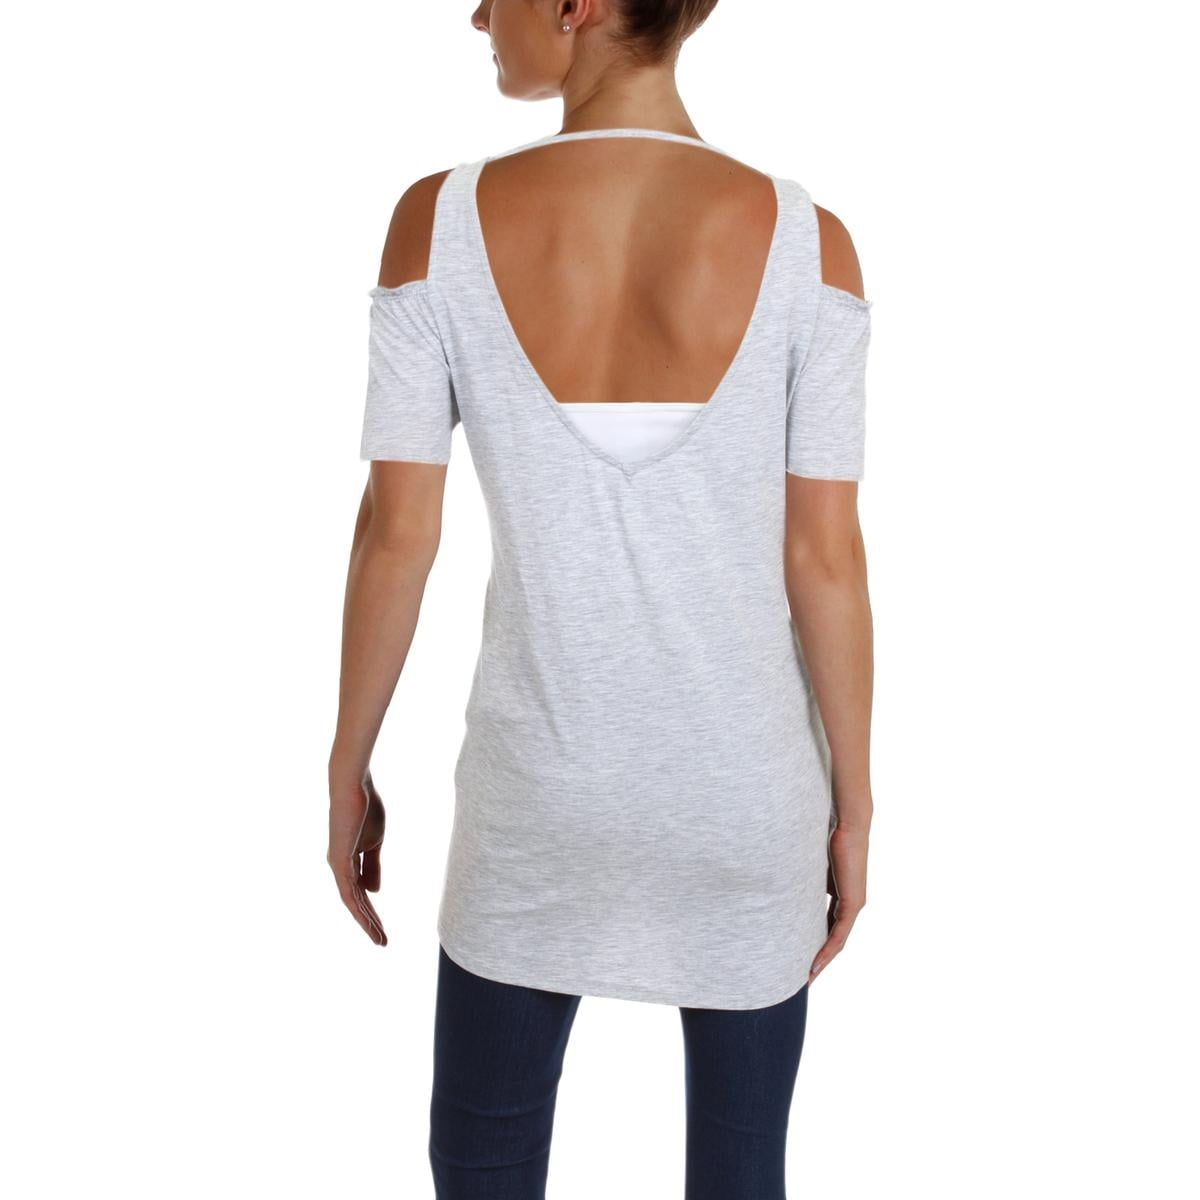 6f9db155e3cba7 Shop Nanette Lepore Womens Pullover Top Cold Shoulder Smocked - Free  Shipping On Orders Over  45 - Overstock - 23440969